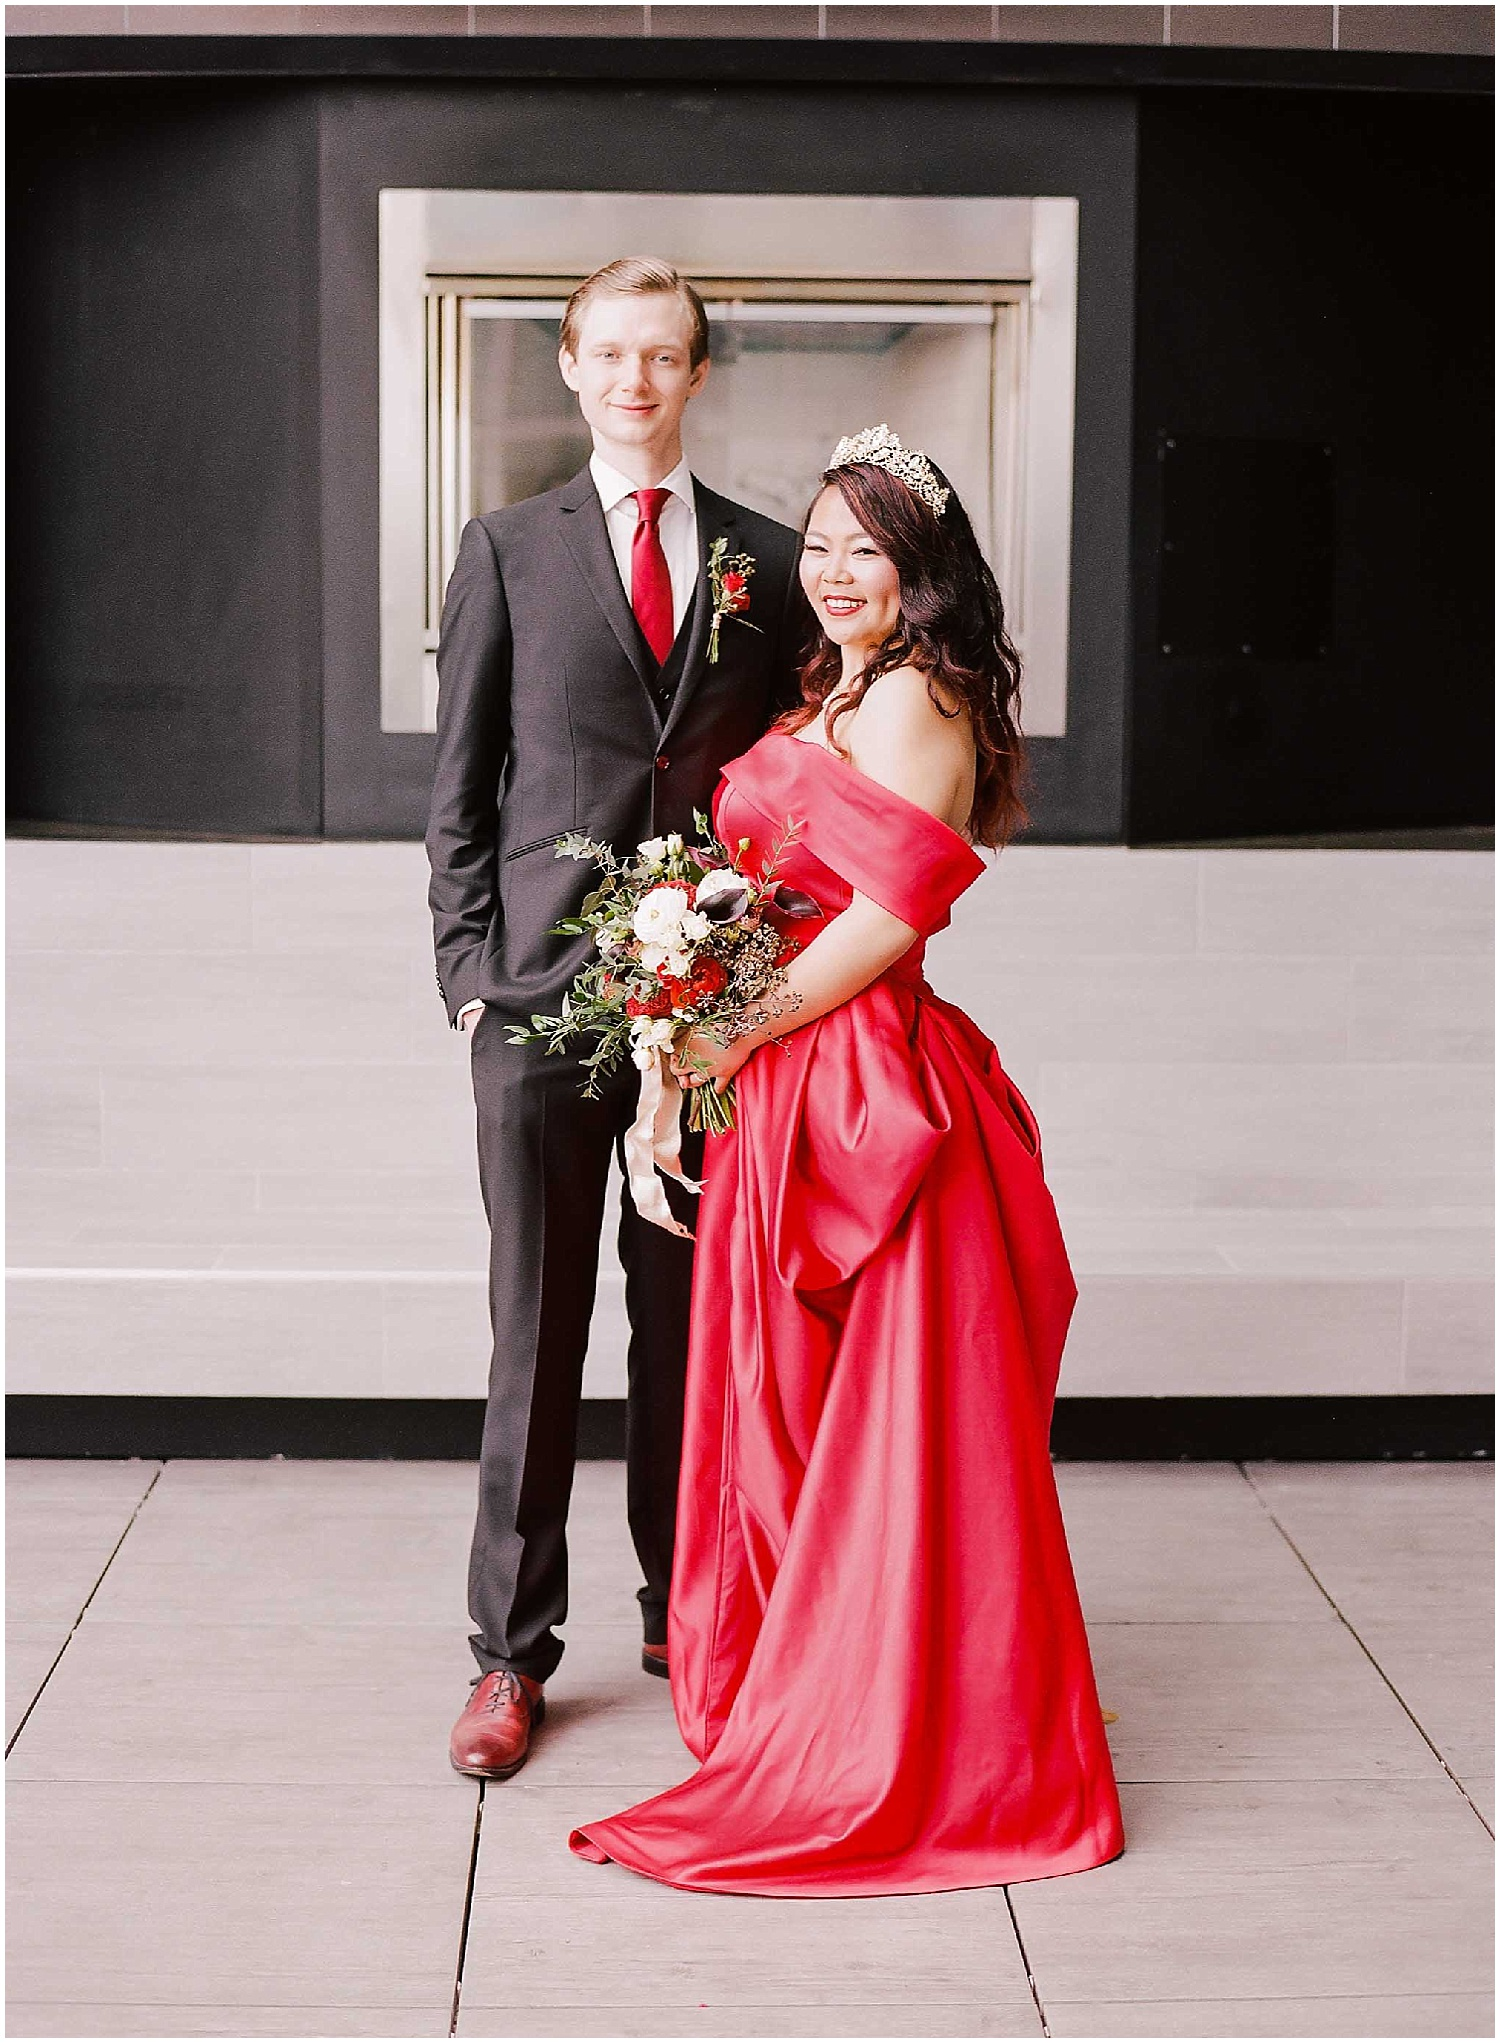 bride and groom portraits at their intimate wedding in hoboken new jersey at the W Hotel, creative wedding dress